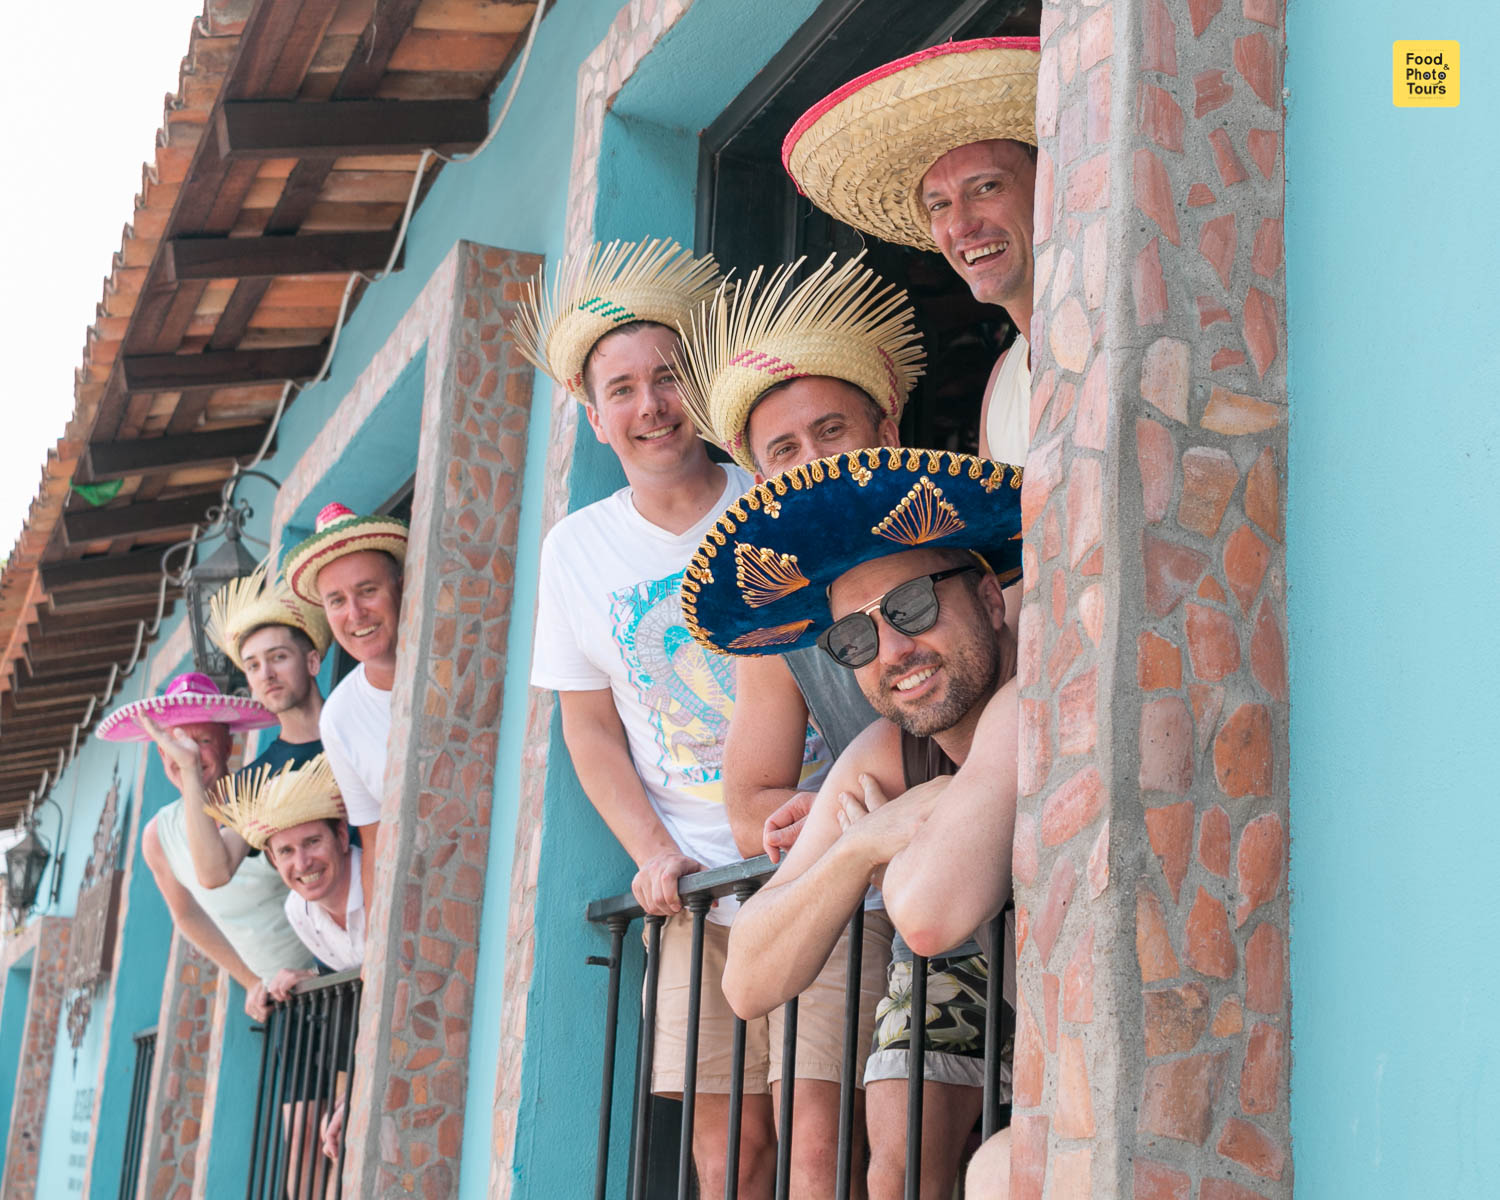 Incentive Groups Activities and Tours in Puerto Vallarta